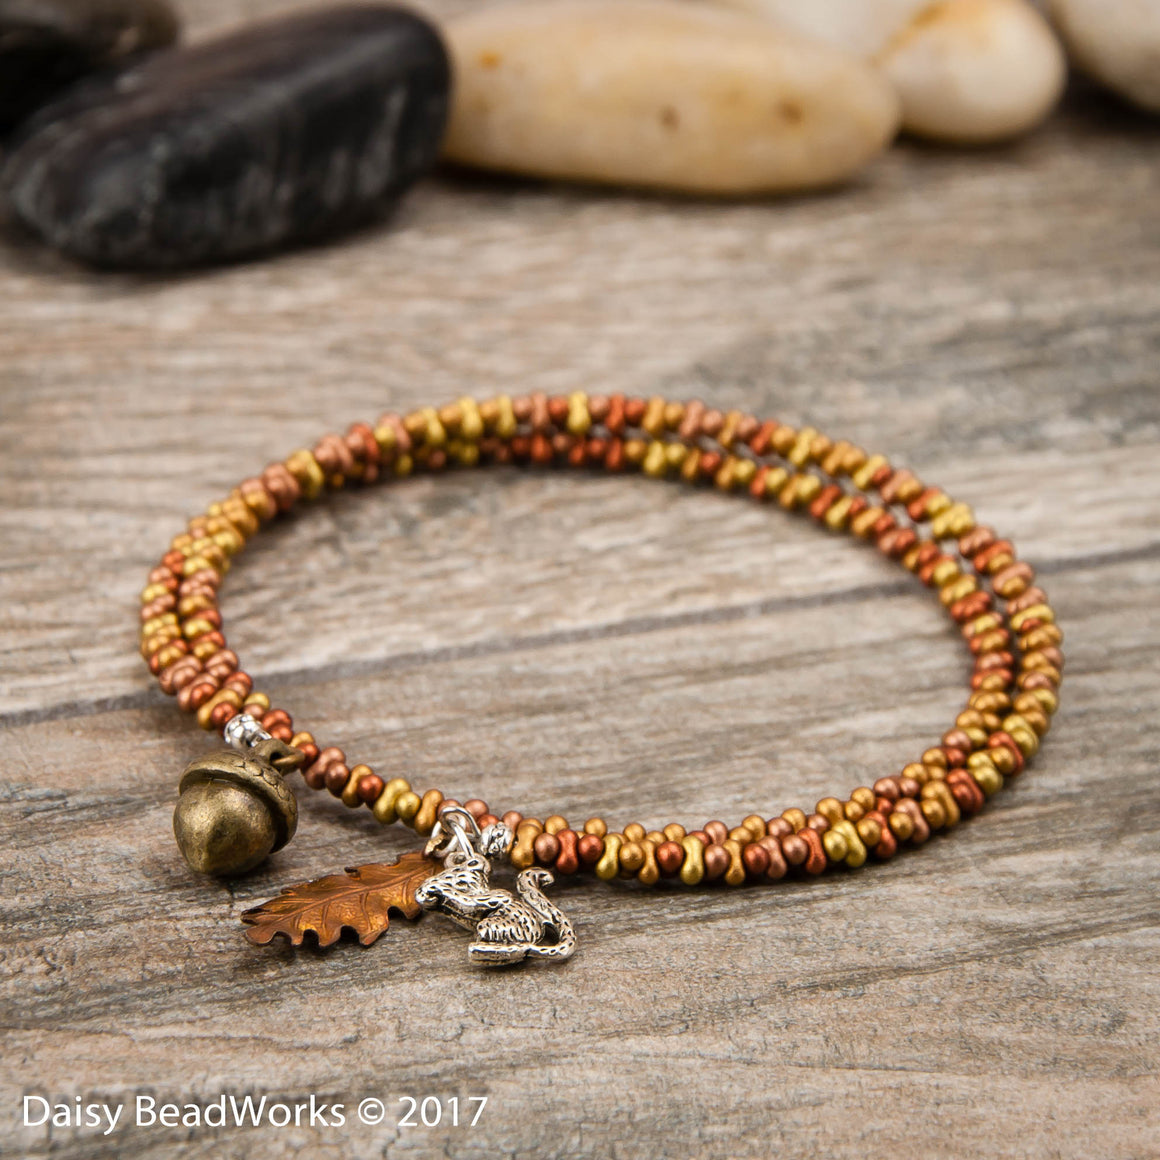 I'm So Squirrely coil bracelet (extra large)